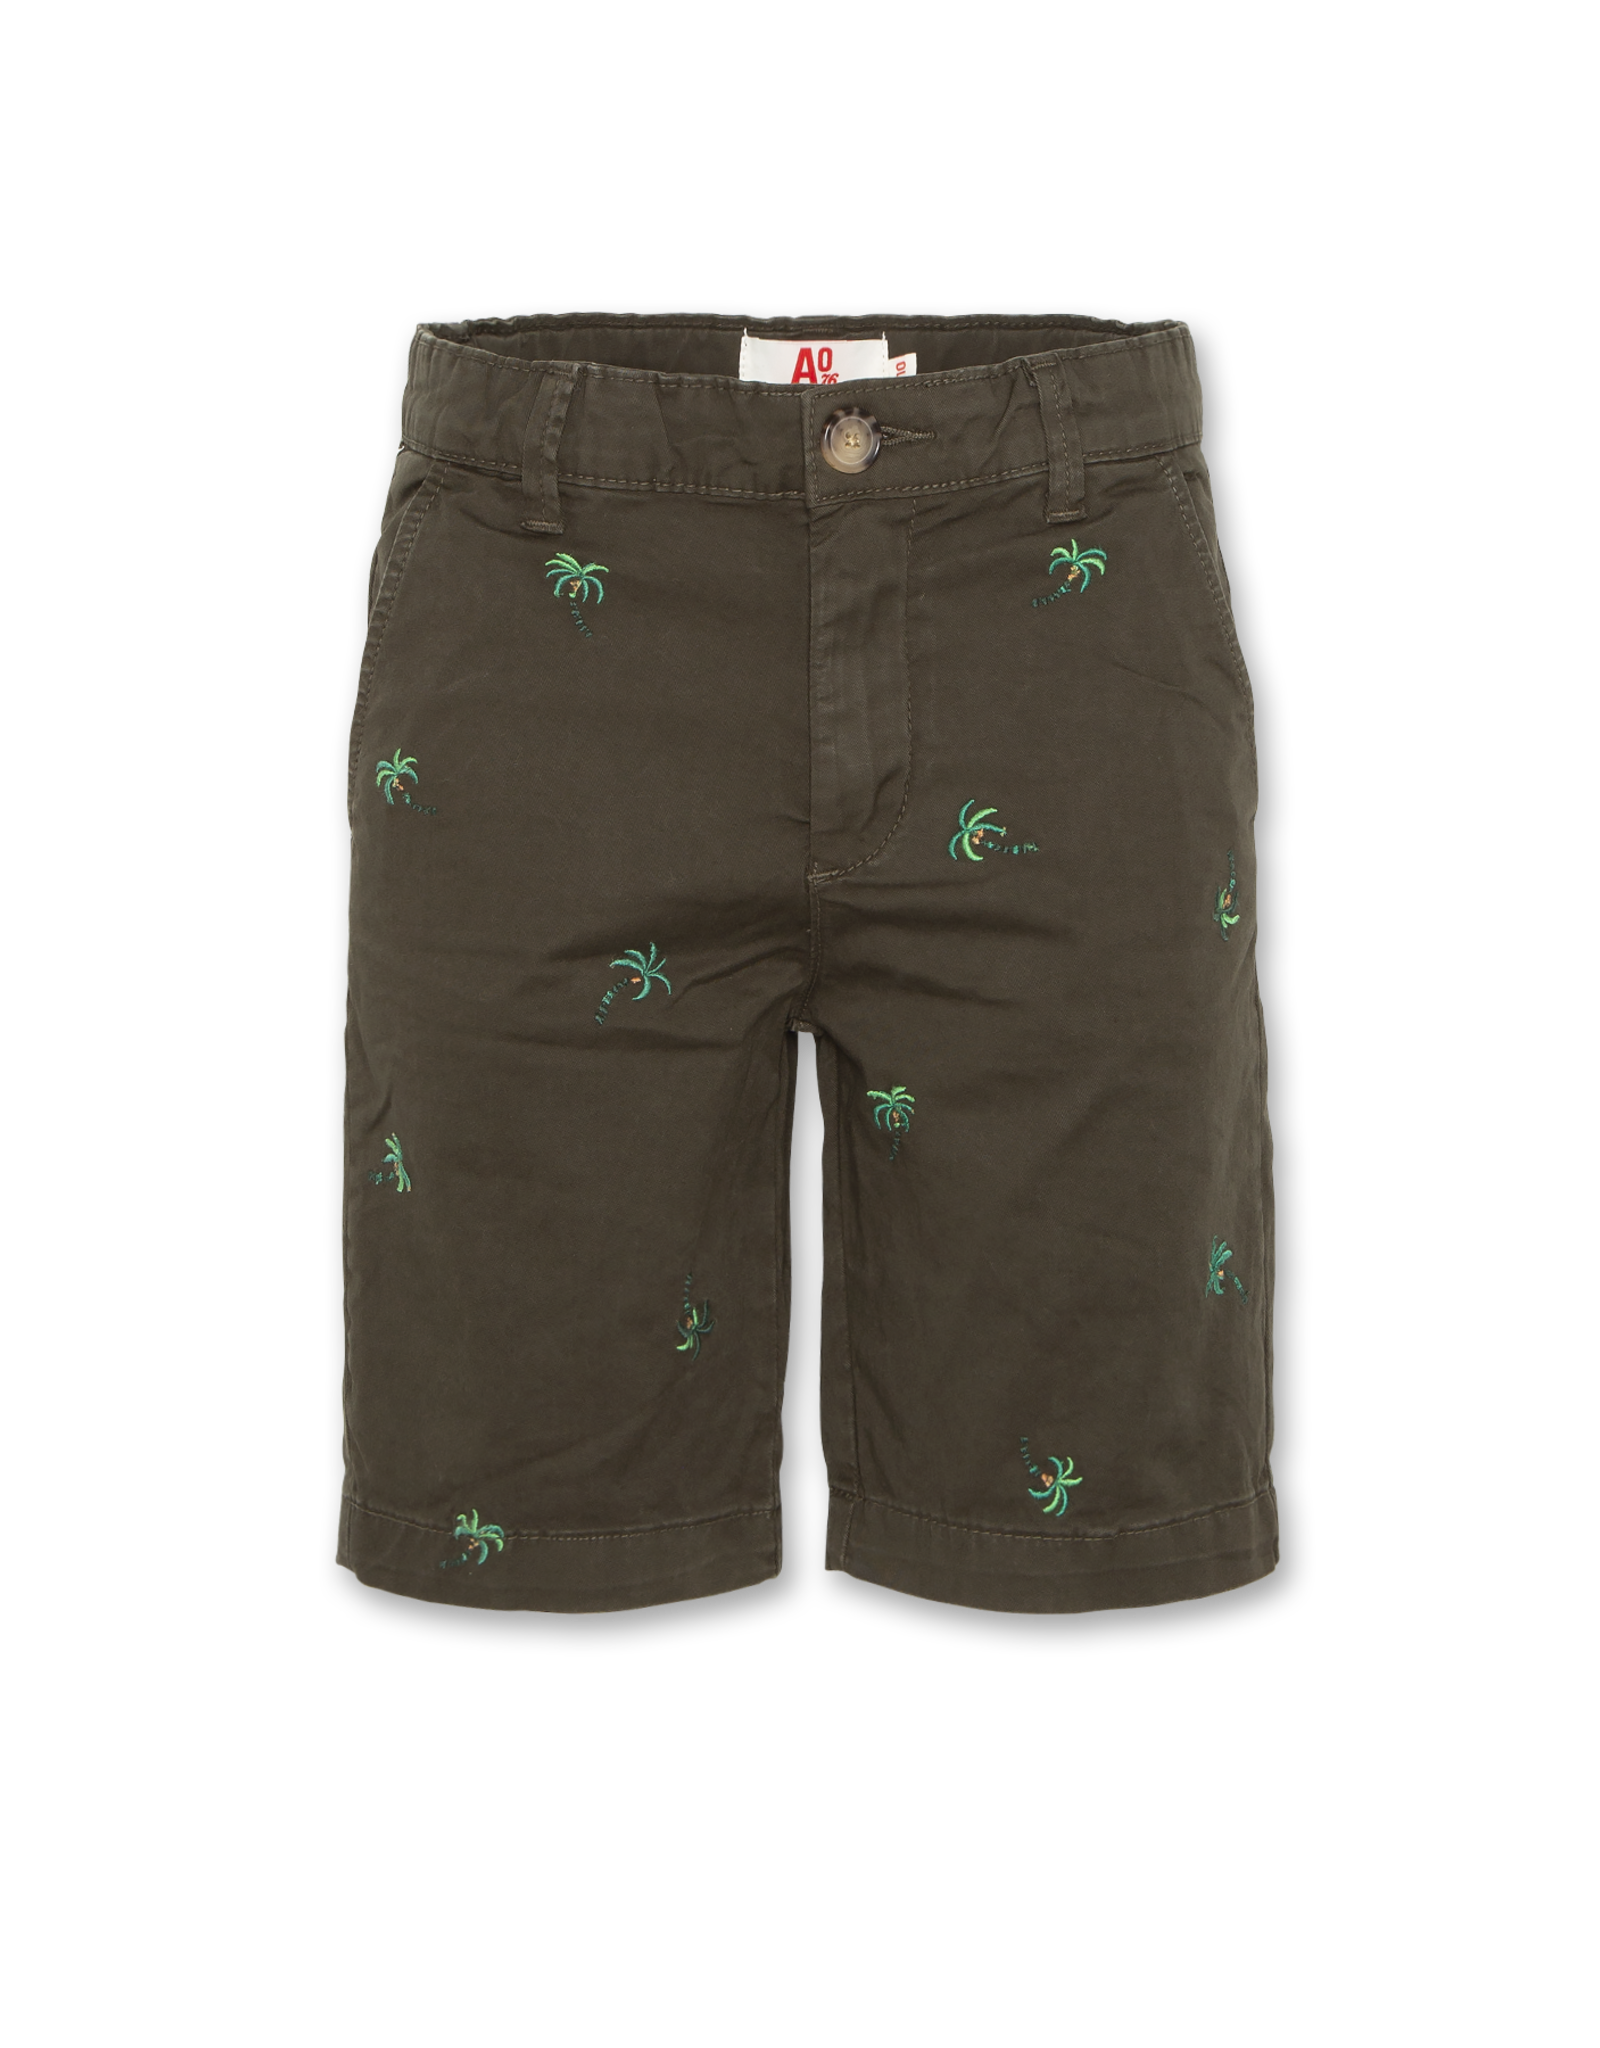 AMERICAN OUTFITTERS Ao76 Barry Chino Shorts Palms